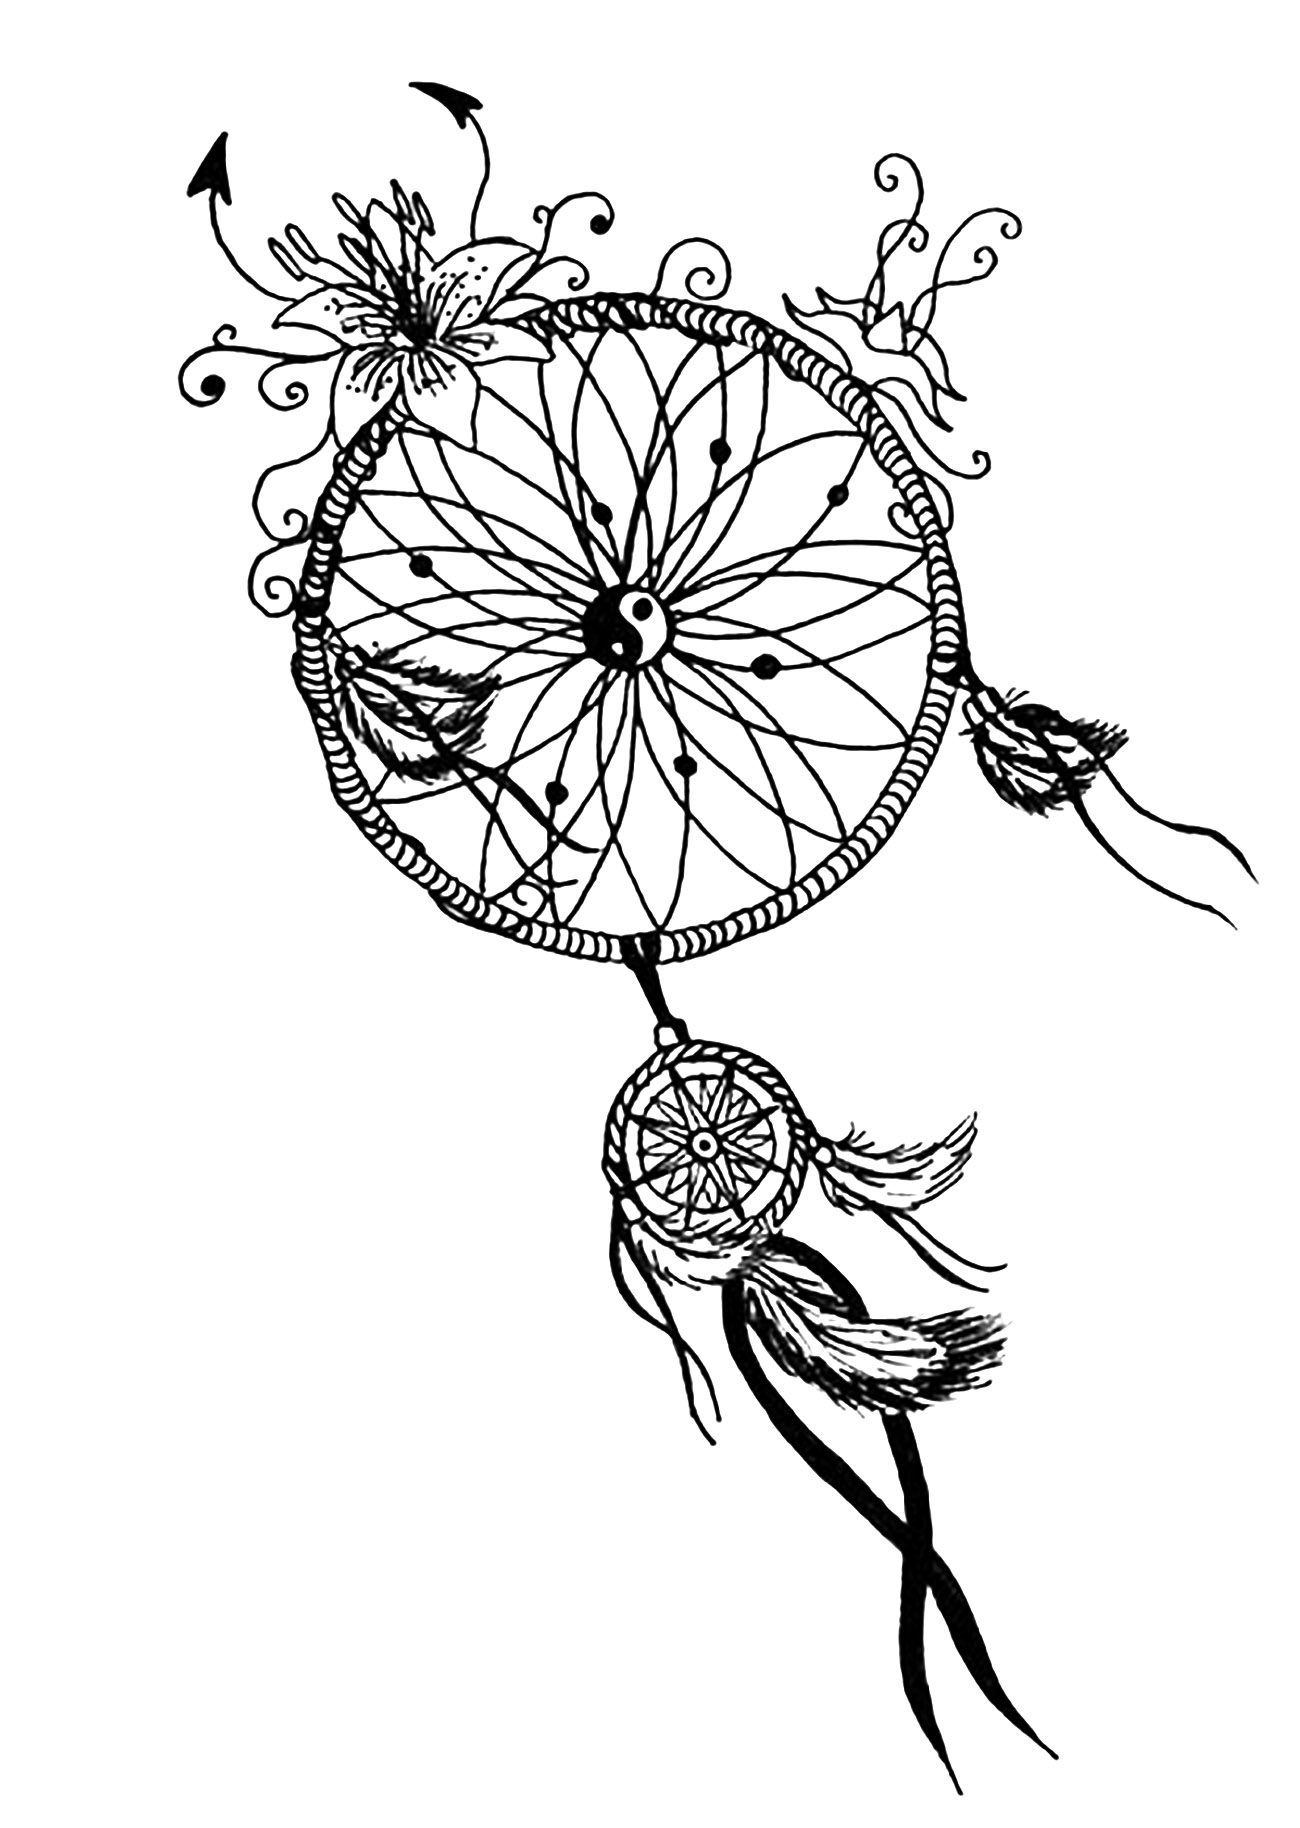 Feather - Coloring Pages for Adults - Page 2